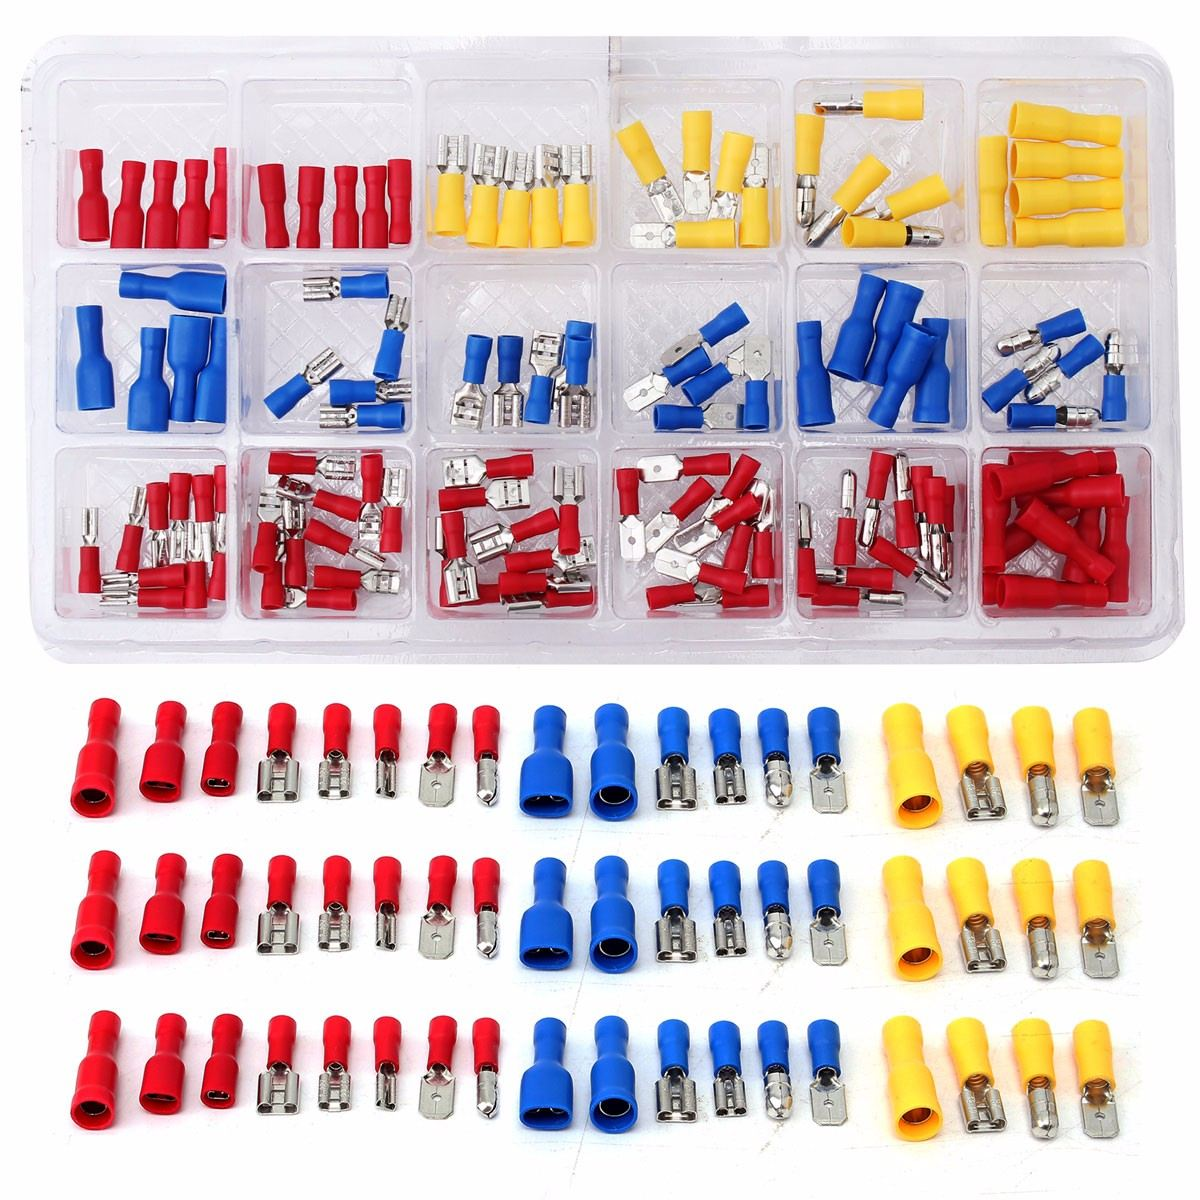 120Pcs Assorted Crimp Terminals Set Kits Electrical Insulated Cord Pin End 10-22AWG Wire Terminal Crimp Connector Spade Set Kit120Pcs Assorted Crimp Terminals Set Kits Electrical Insulated Cord Pin End 10-22AWG Wire Terminal Crimp Connector Spade Set Kit